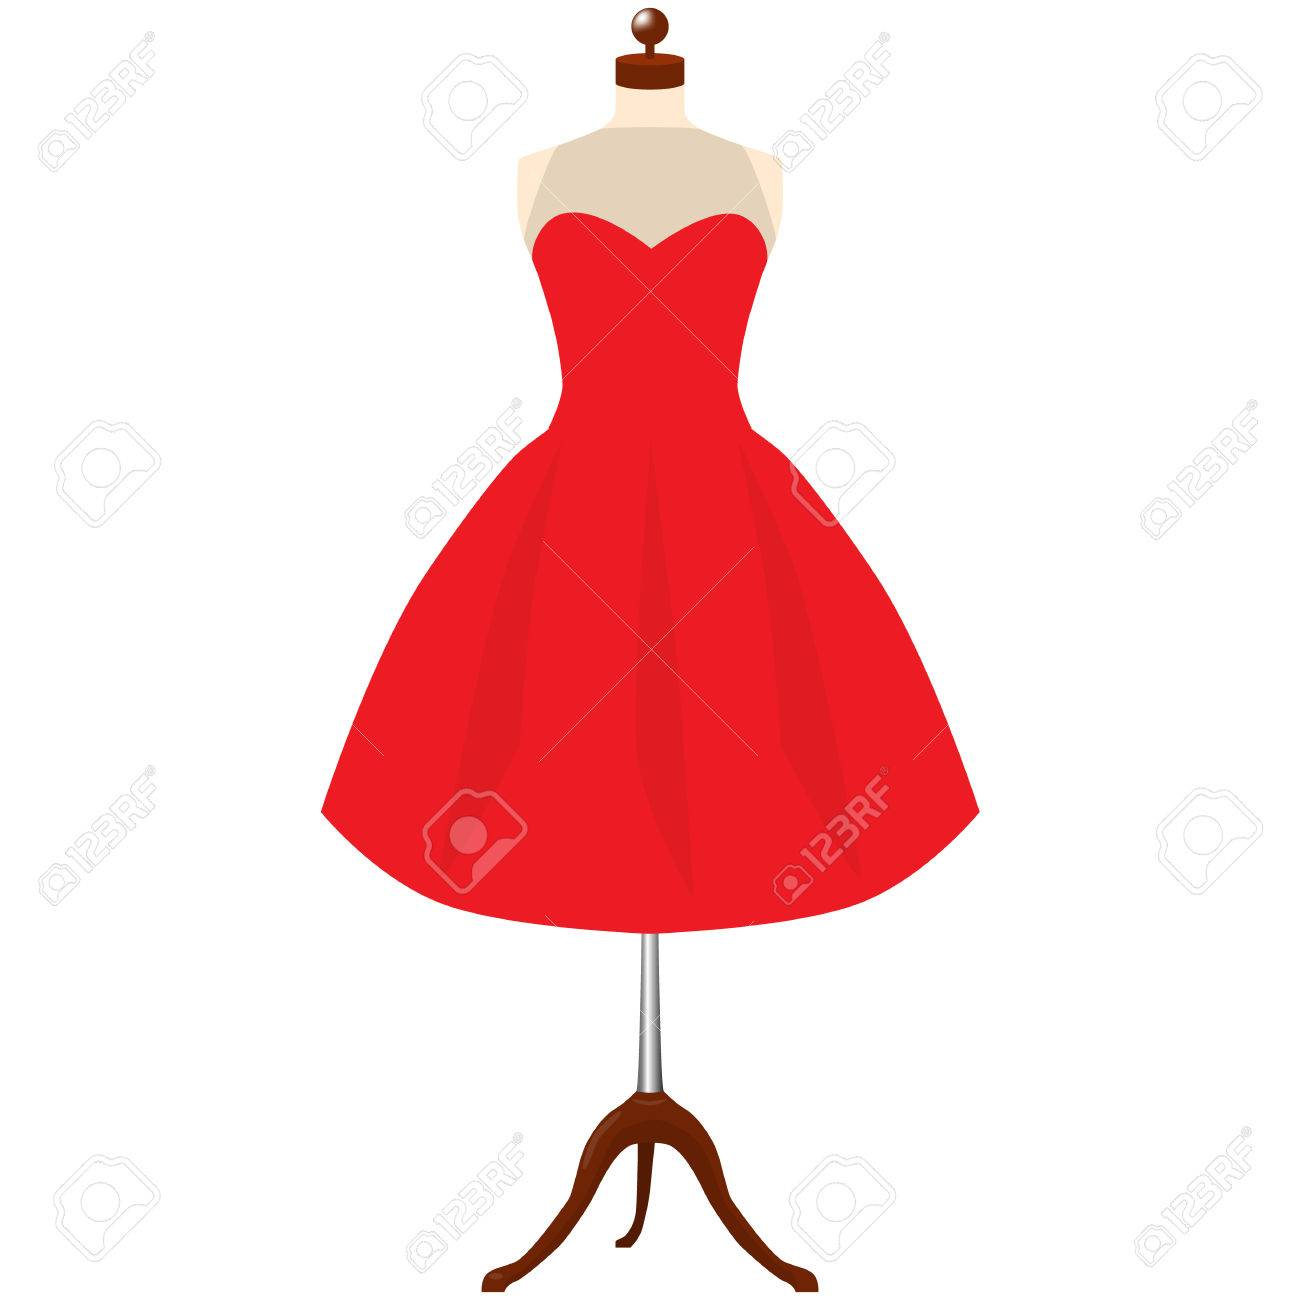 Classic Women\'s Red Dress Template. A Red Dress On Mannequin.. Stock ...